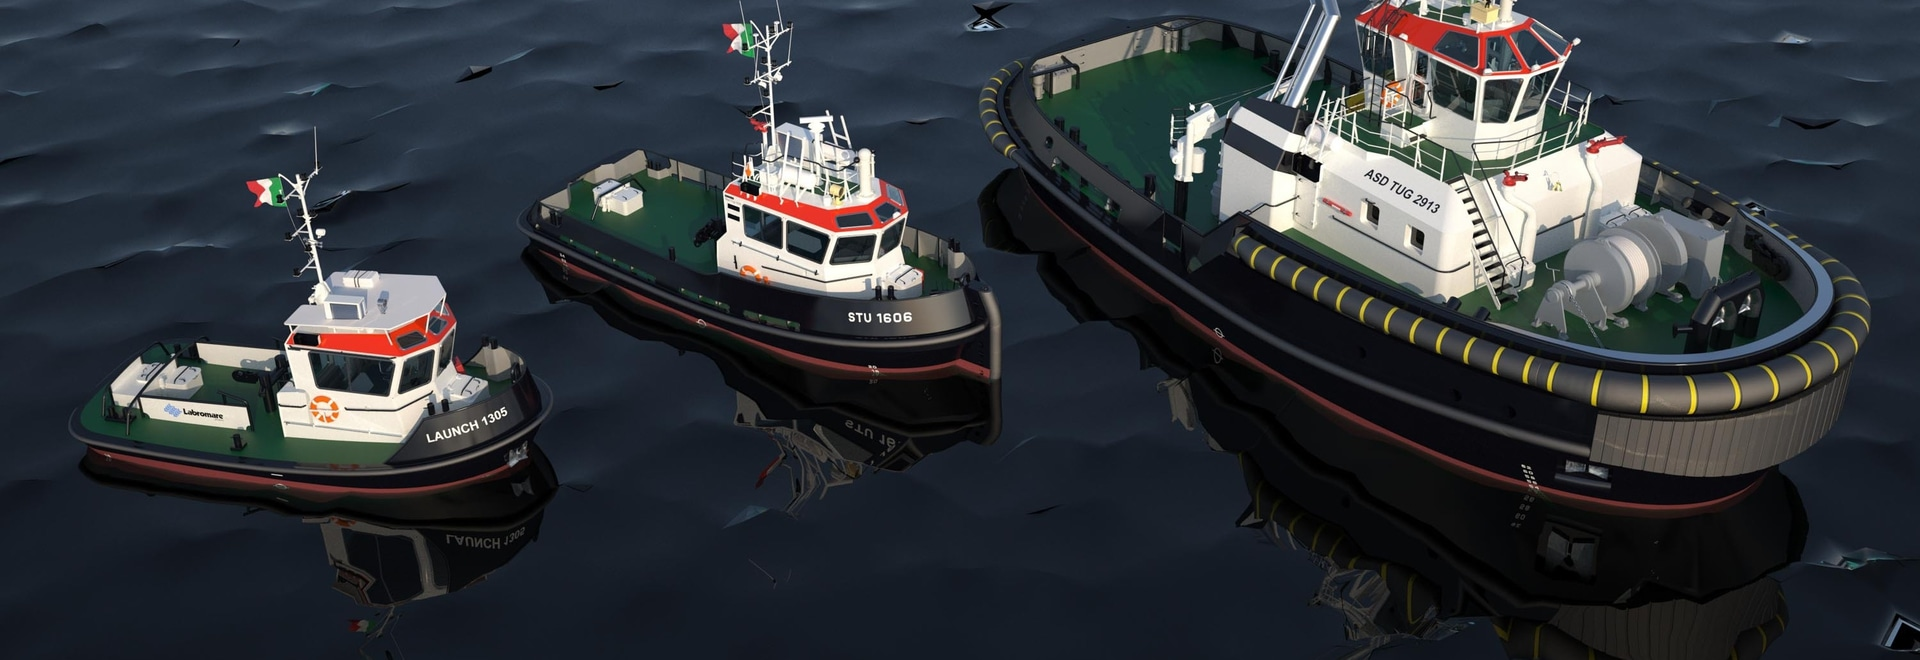 An ASD tug, Stan Tug 1606 and a Stan Launch 1305 are on order for Fratelli Neri (Damen)